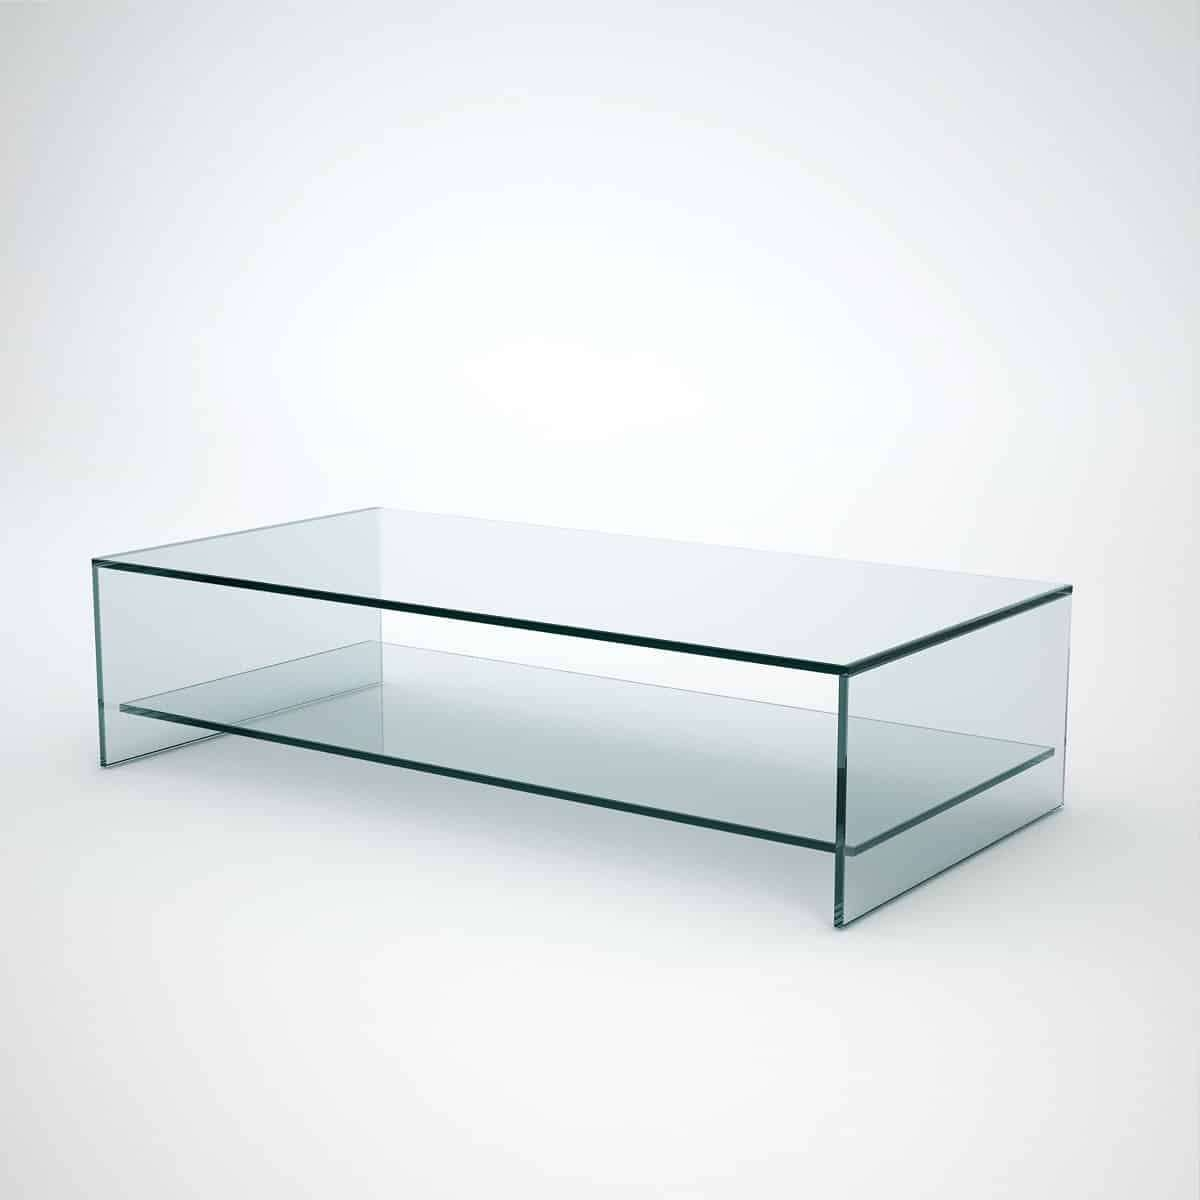 Judd – Rectangle Glass Coffee Table With Shelf – Klarity – Glass Intended For Current Glass Coffee Tables With Shelf (View 11 of 20)